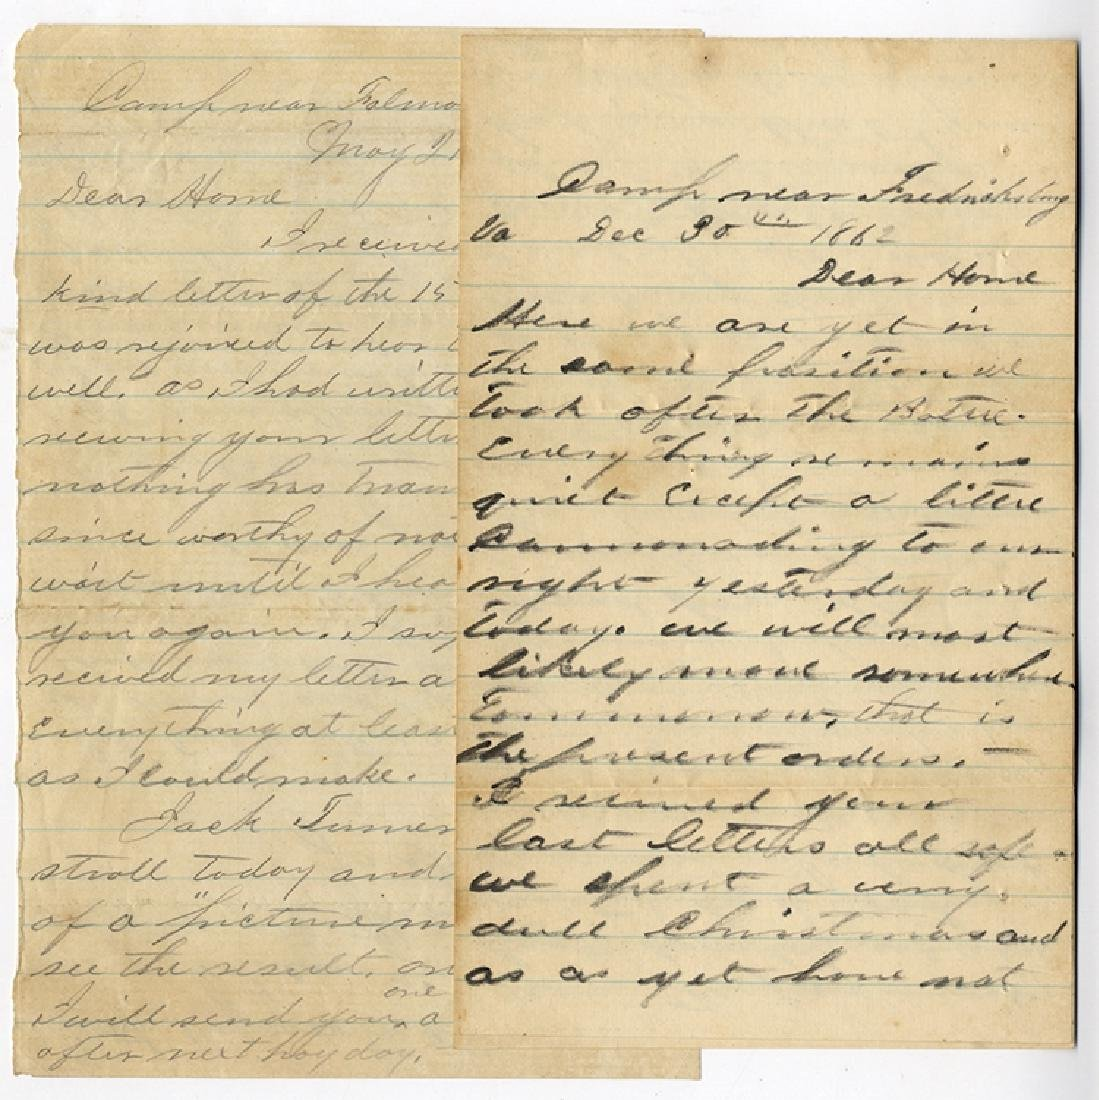 49th New York Infantry - Two Letters from Medal of